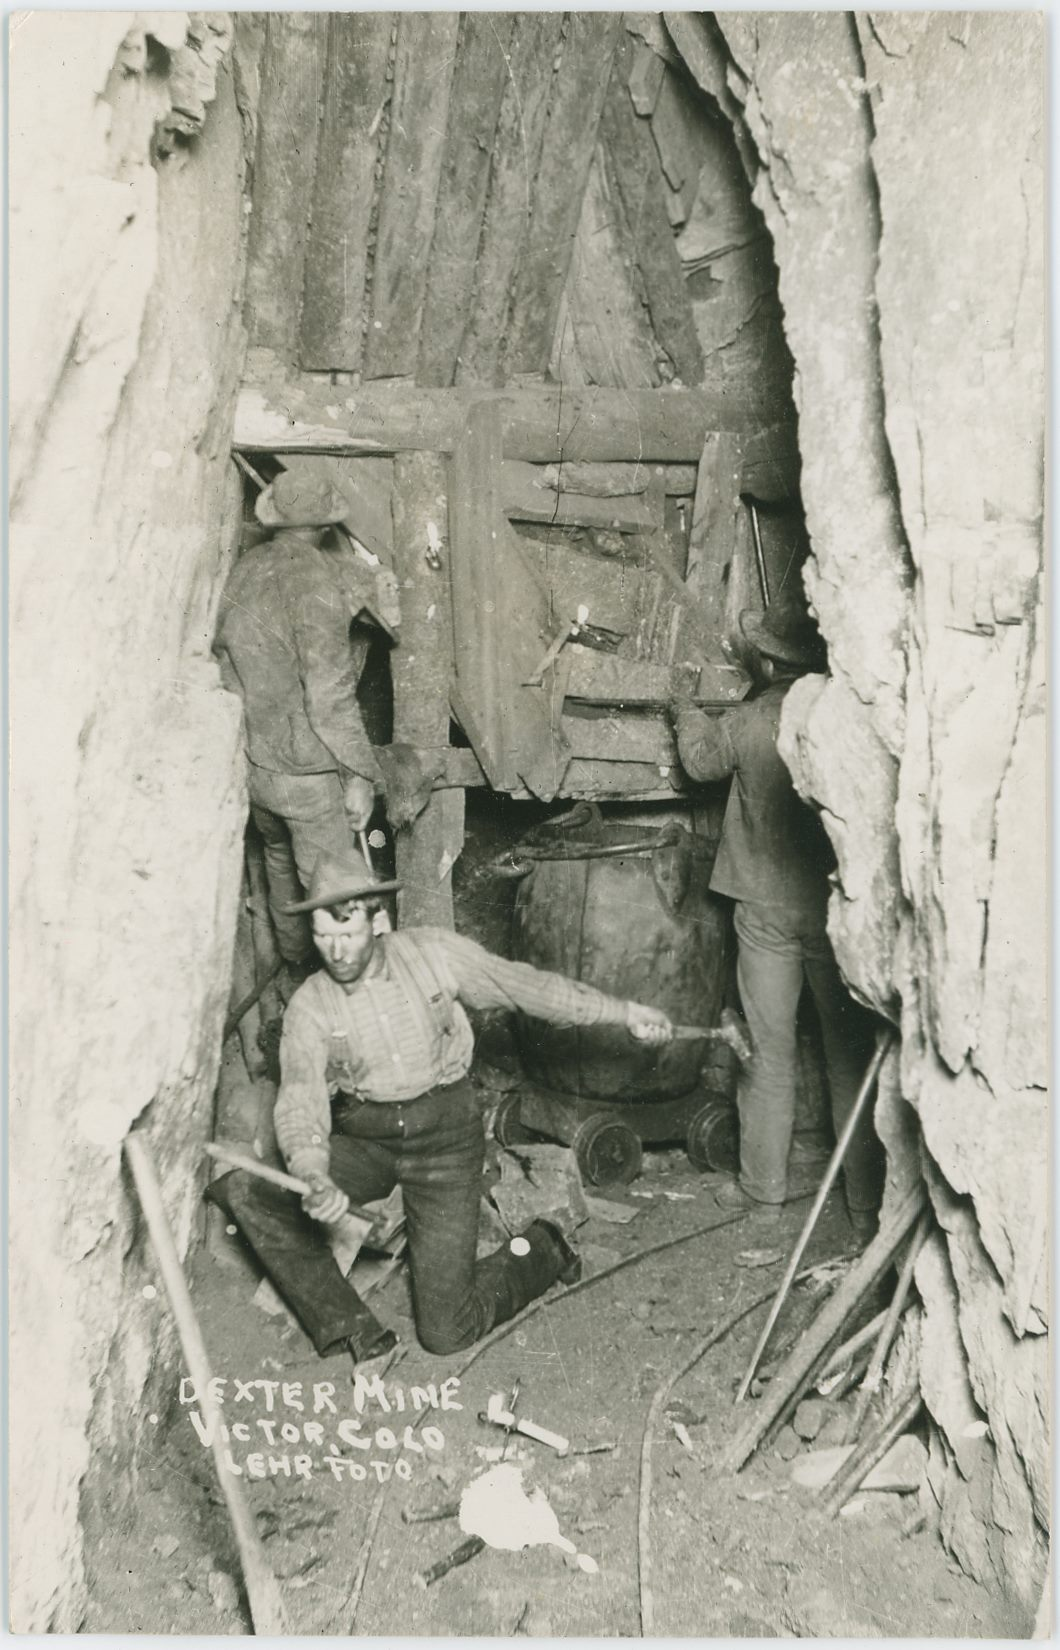 I've seen this view as two postcard versions and one photograph, but none of them has given anymore info then that this is someplace underground at the Dexter Mine on Bull Hill, no level info ever been given.    The view is of 3 miners sort of posing for a photo at a chute with a at the corner of a curve in the underground works. One man is sitting partly on his knee and is working a hammer and chisel with his left arm holding the hammer unless the photo is a mirror copy of the original scene, as I've seen happen before in other images. The other two men has their backs at the photographer and seems to be working the chute to fill a bucket sitting on top of a wheel setup pulled away from the rails.